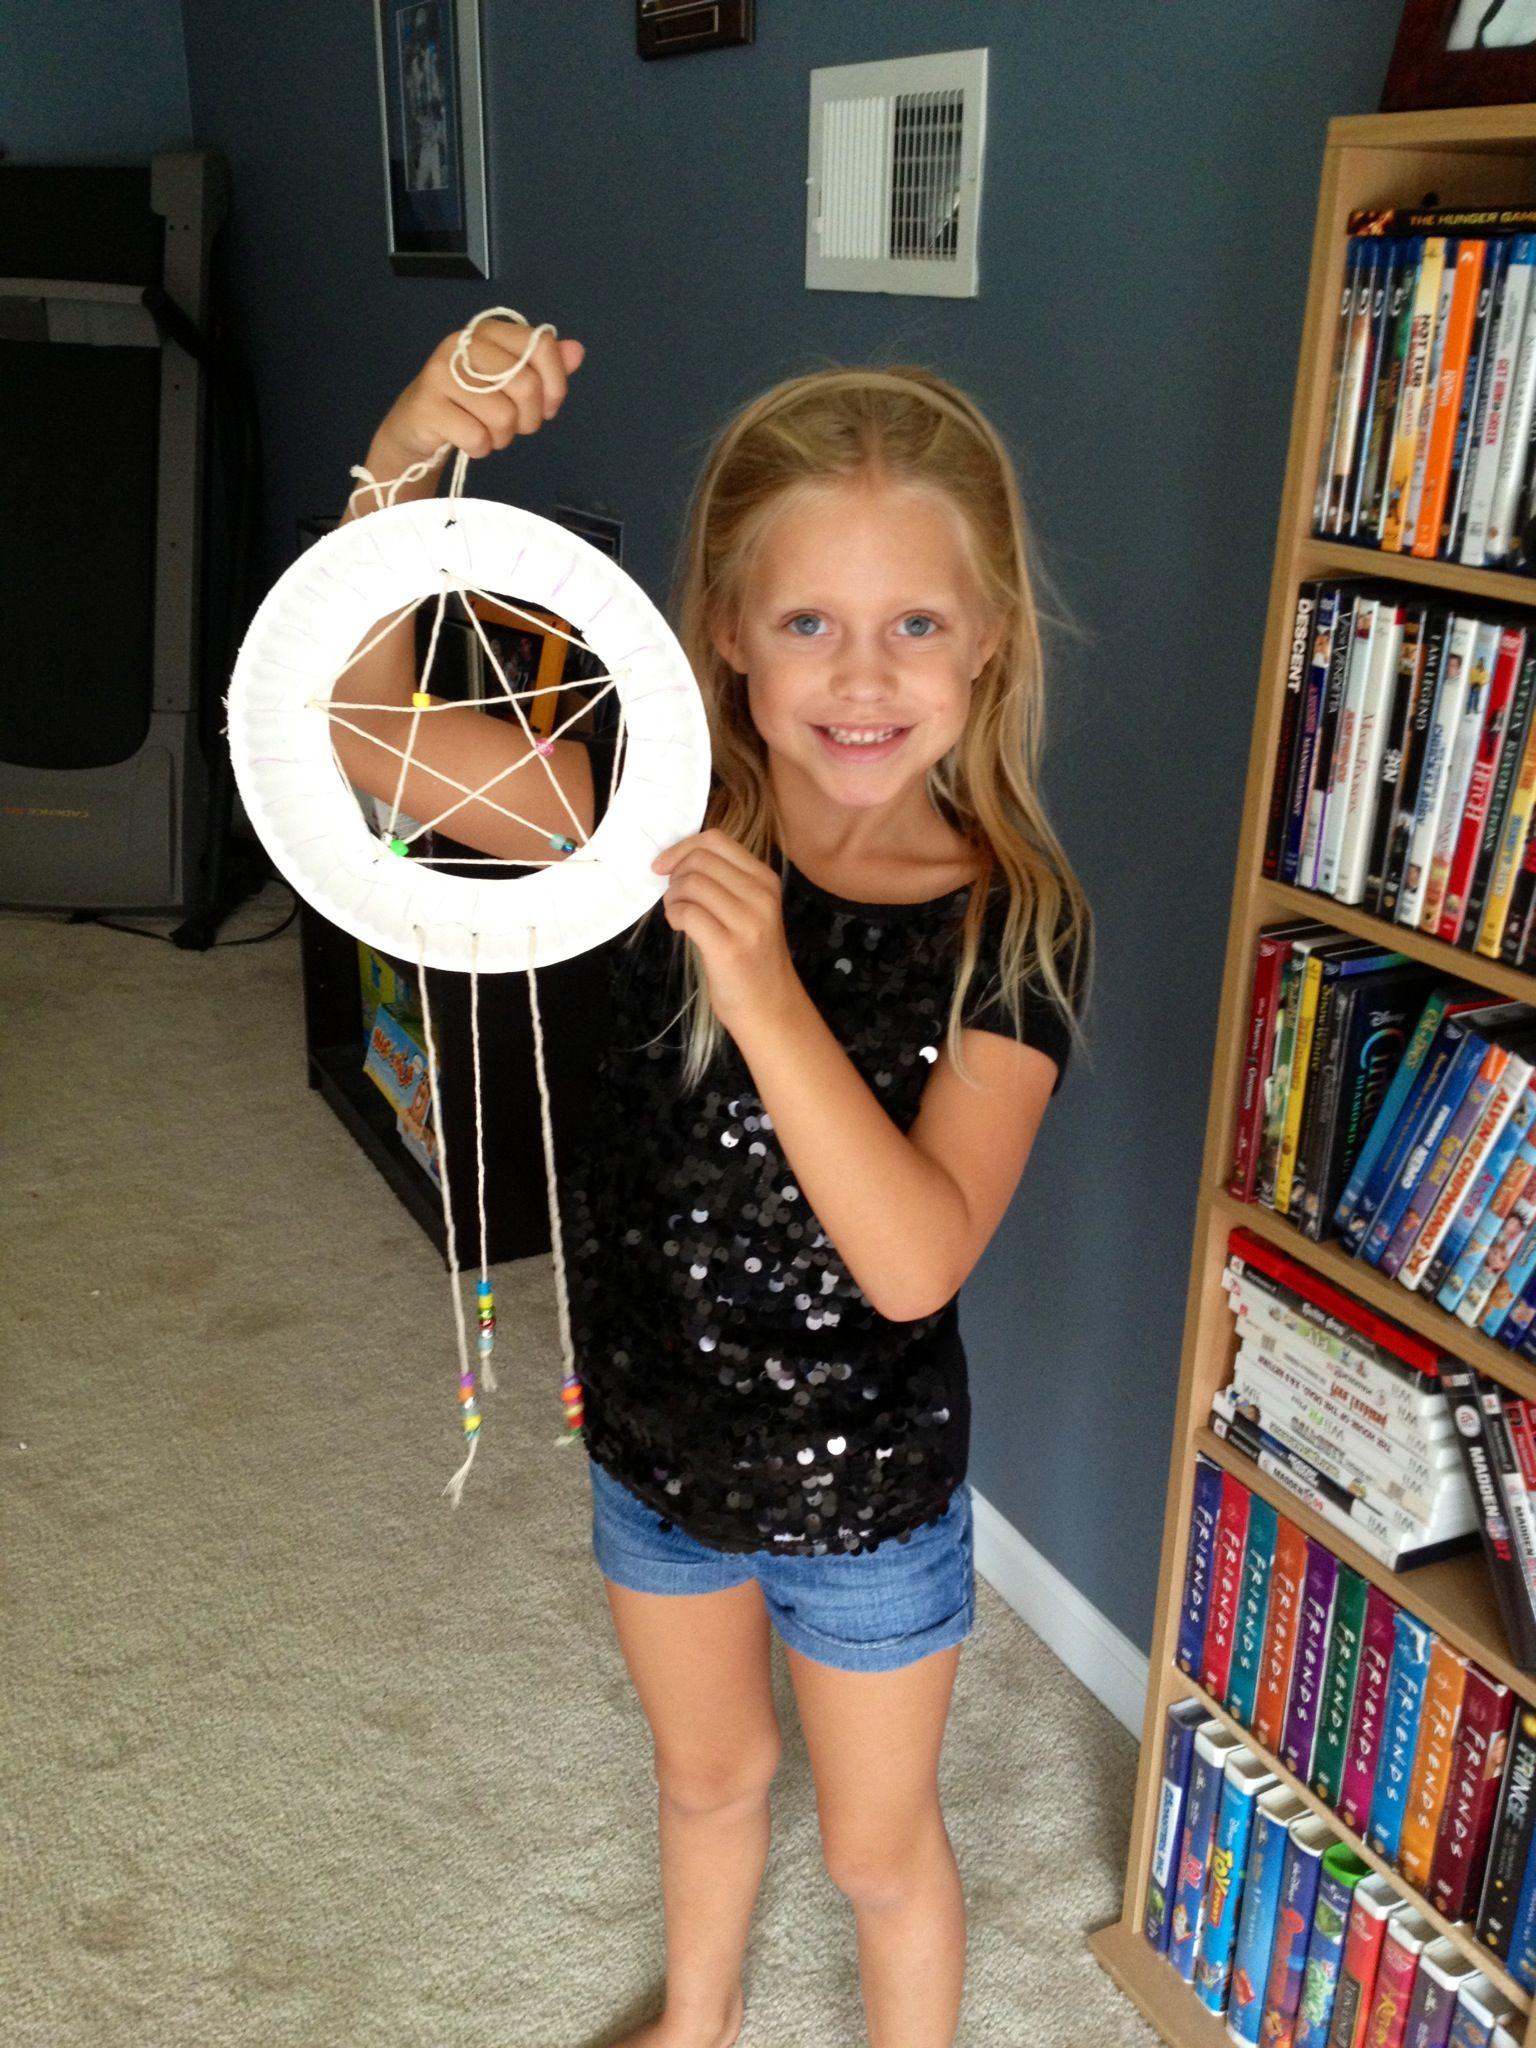 Made dreamcatchers from paper plates